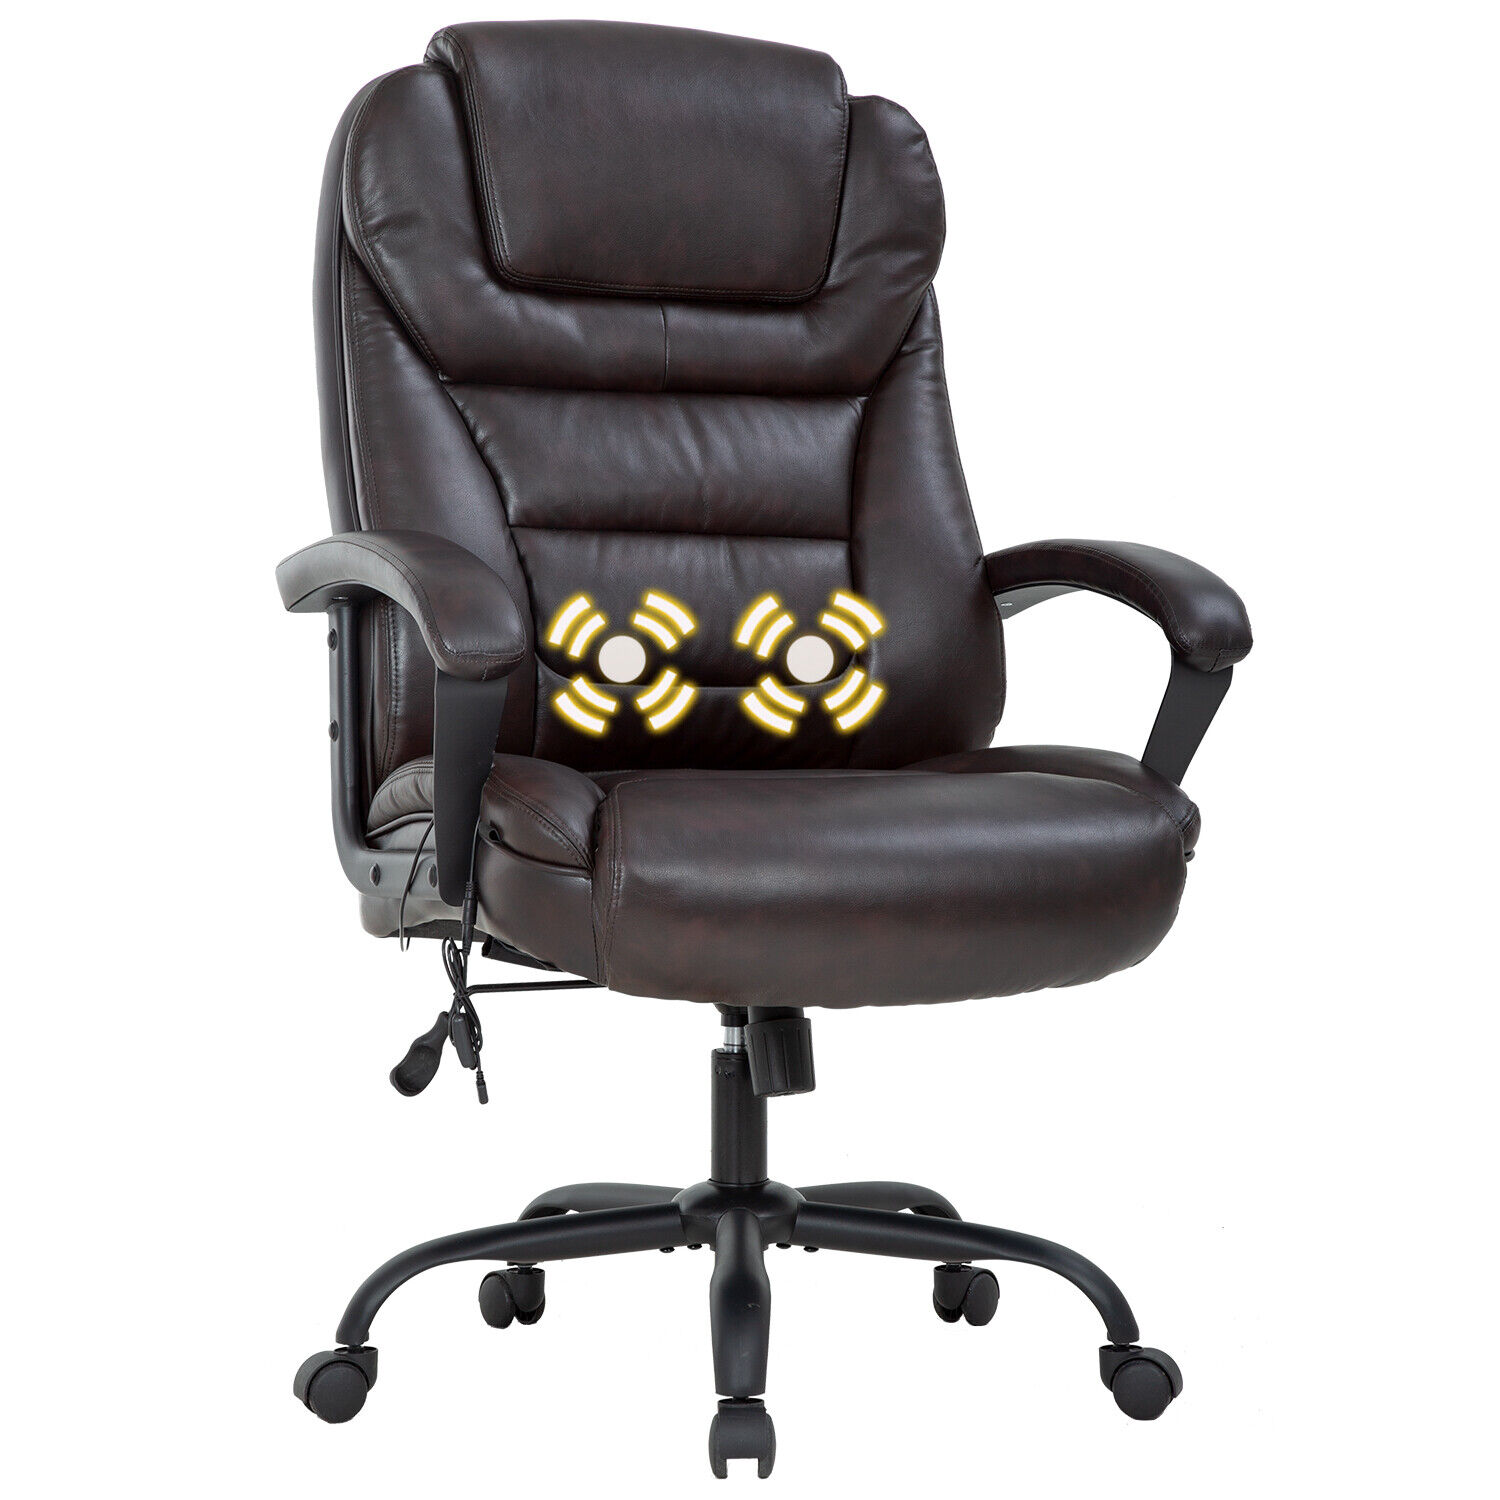 Big and Tall 500lbs Wide Seat Ergonomic Desk Chair with Lumbar Support Arms Business & Industrial